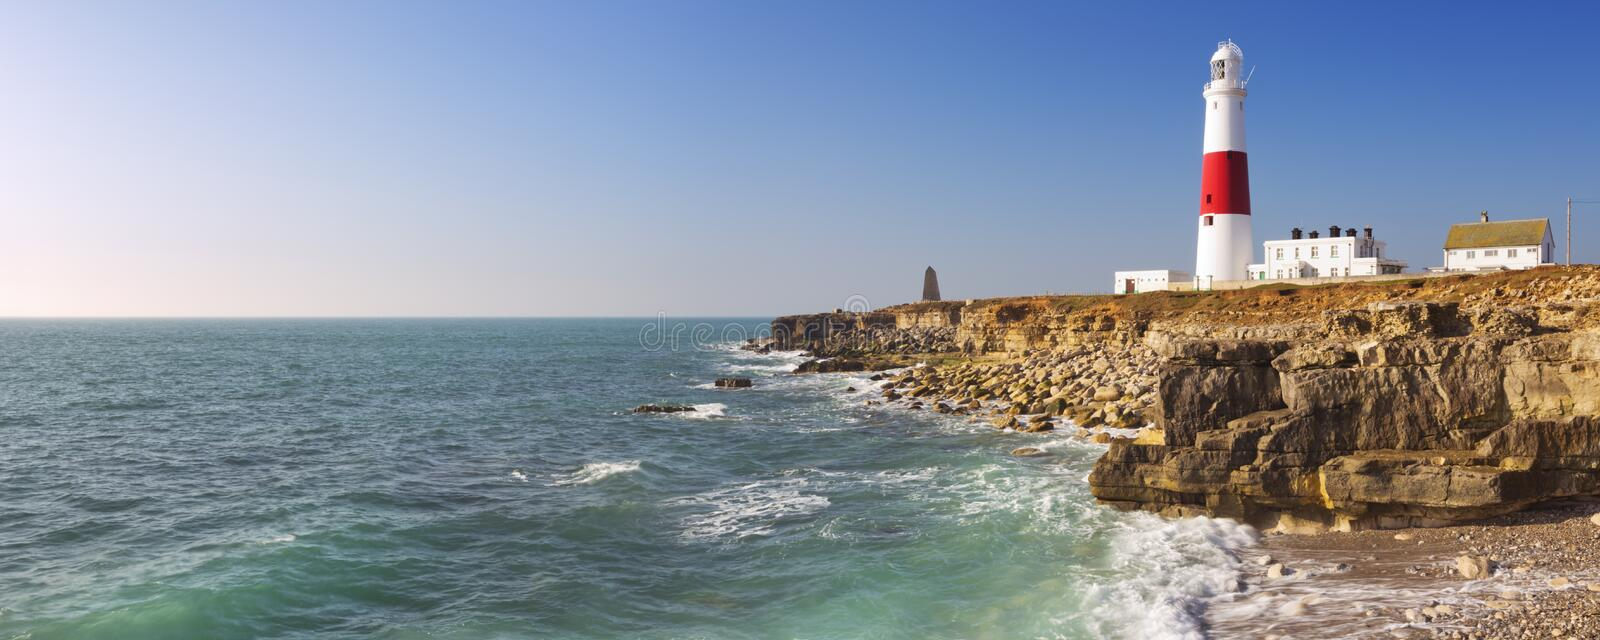 Portland Bill Lighthouse in Dorset, England on a sunny day. The Portland Bill Lighthouse on the Isle of Portland in Dorset, England on a sunny day royalty free stock photo